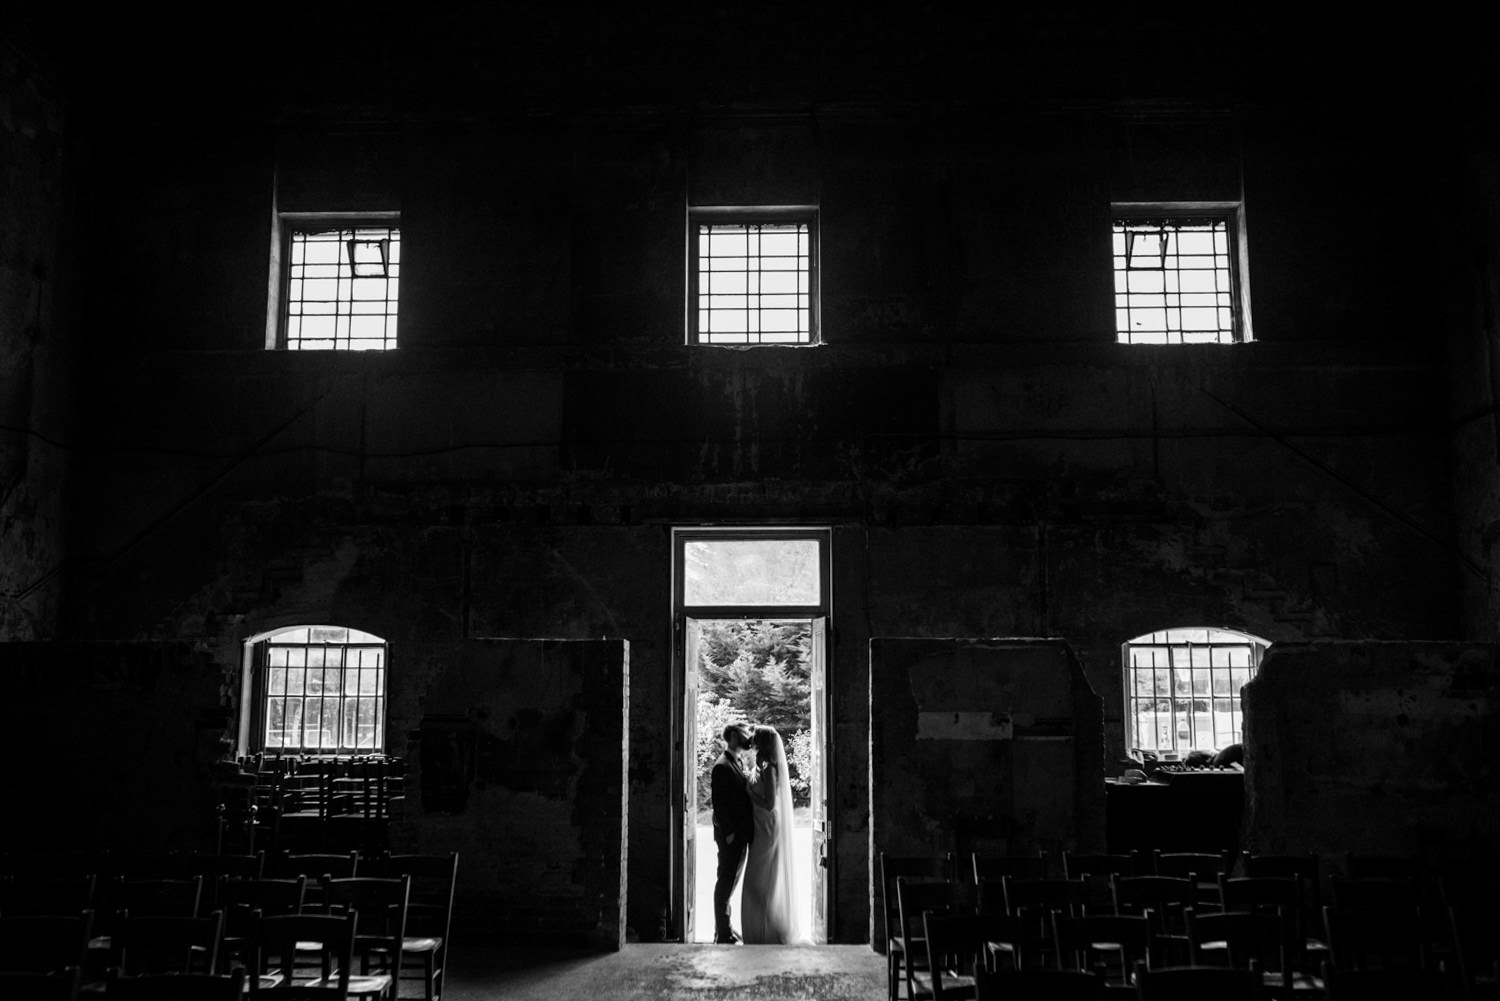 asylum-wedding-photographer-the-peasant-in-clerkenwell-wedding--68.jpg